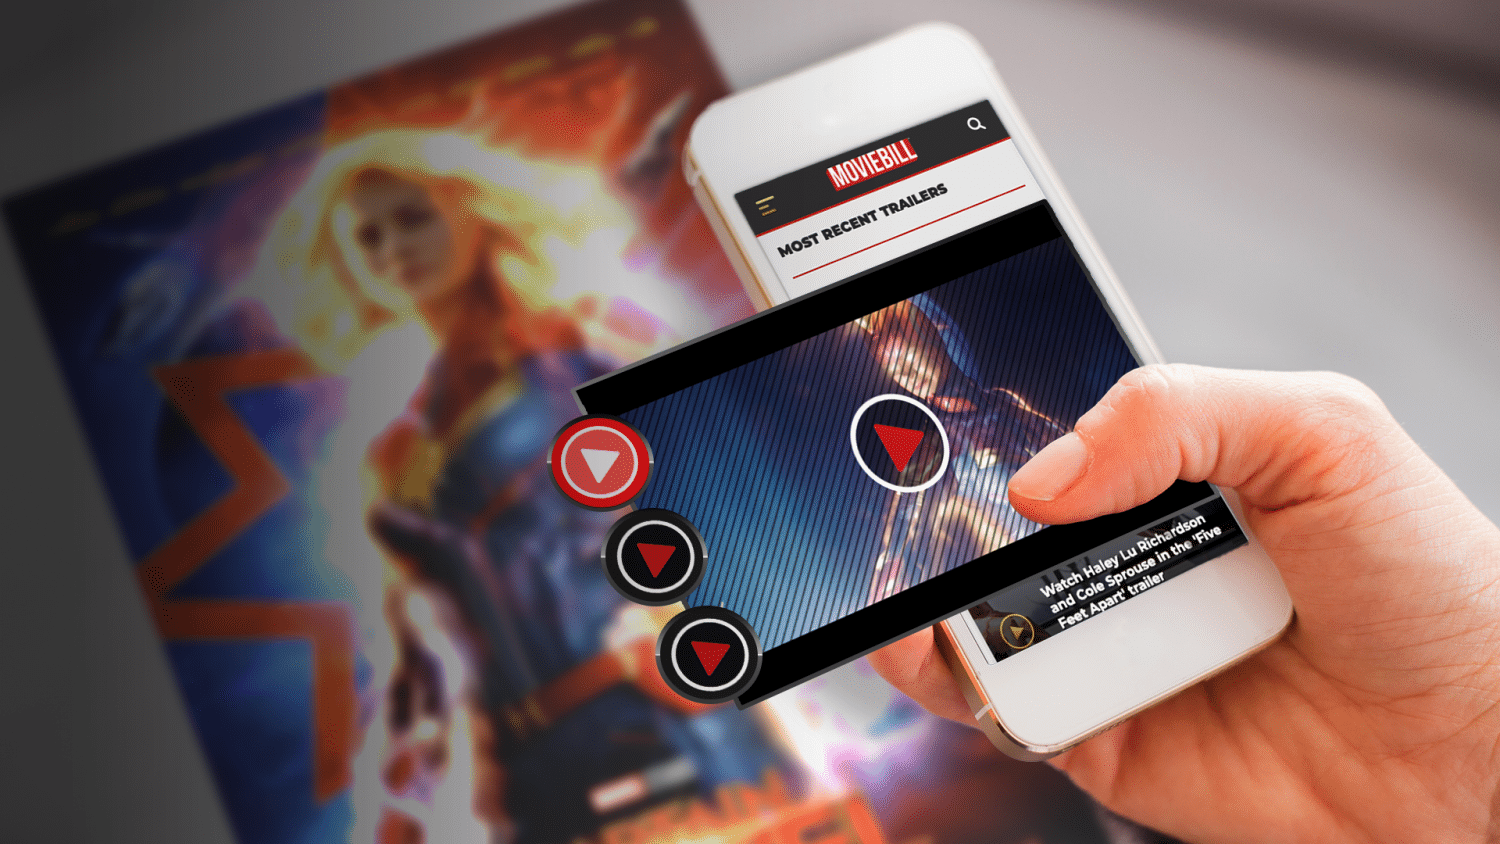 Captain Marvel Poster Activation